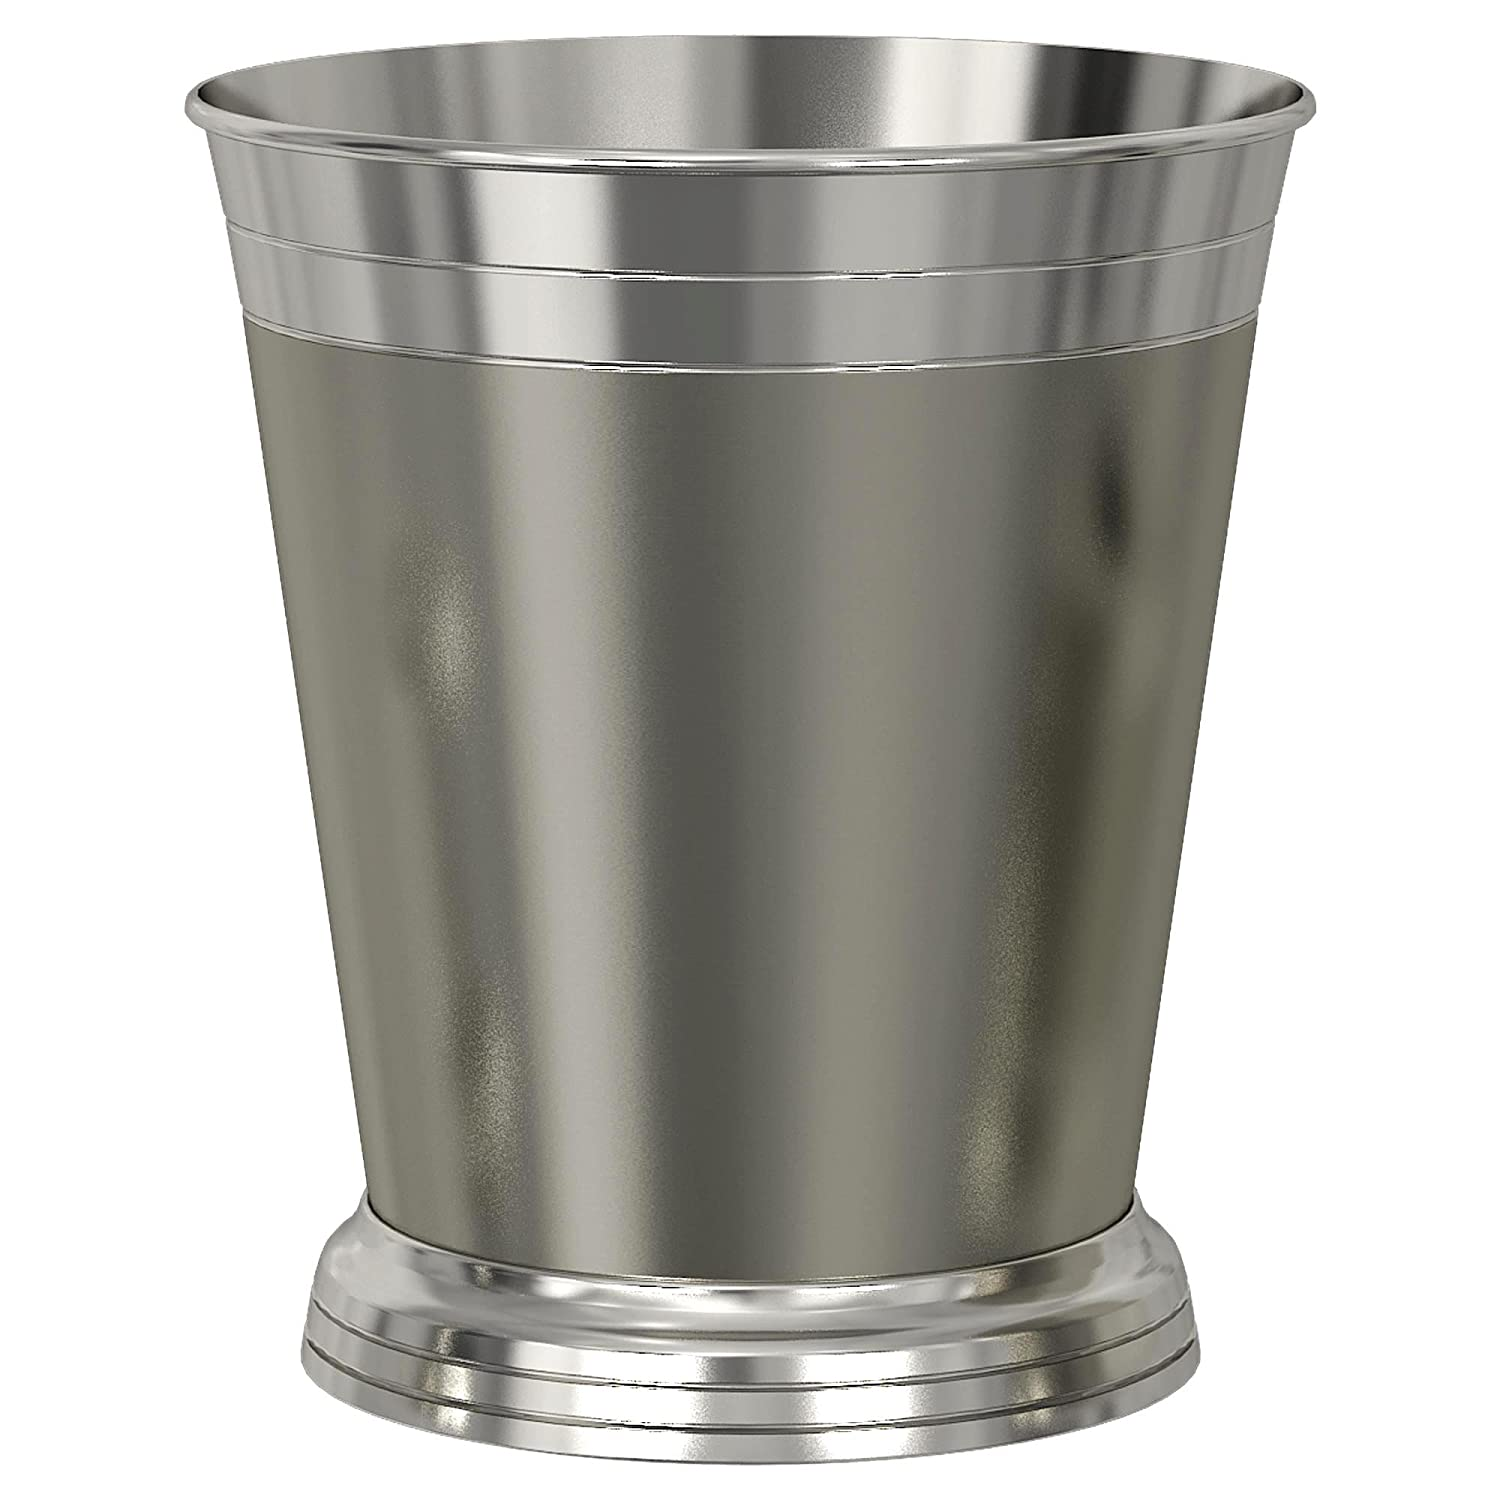 nu steel Lighthouse Matte Shiny Wastebasket